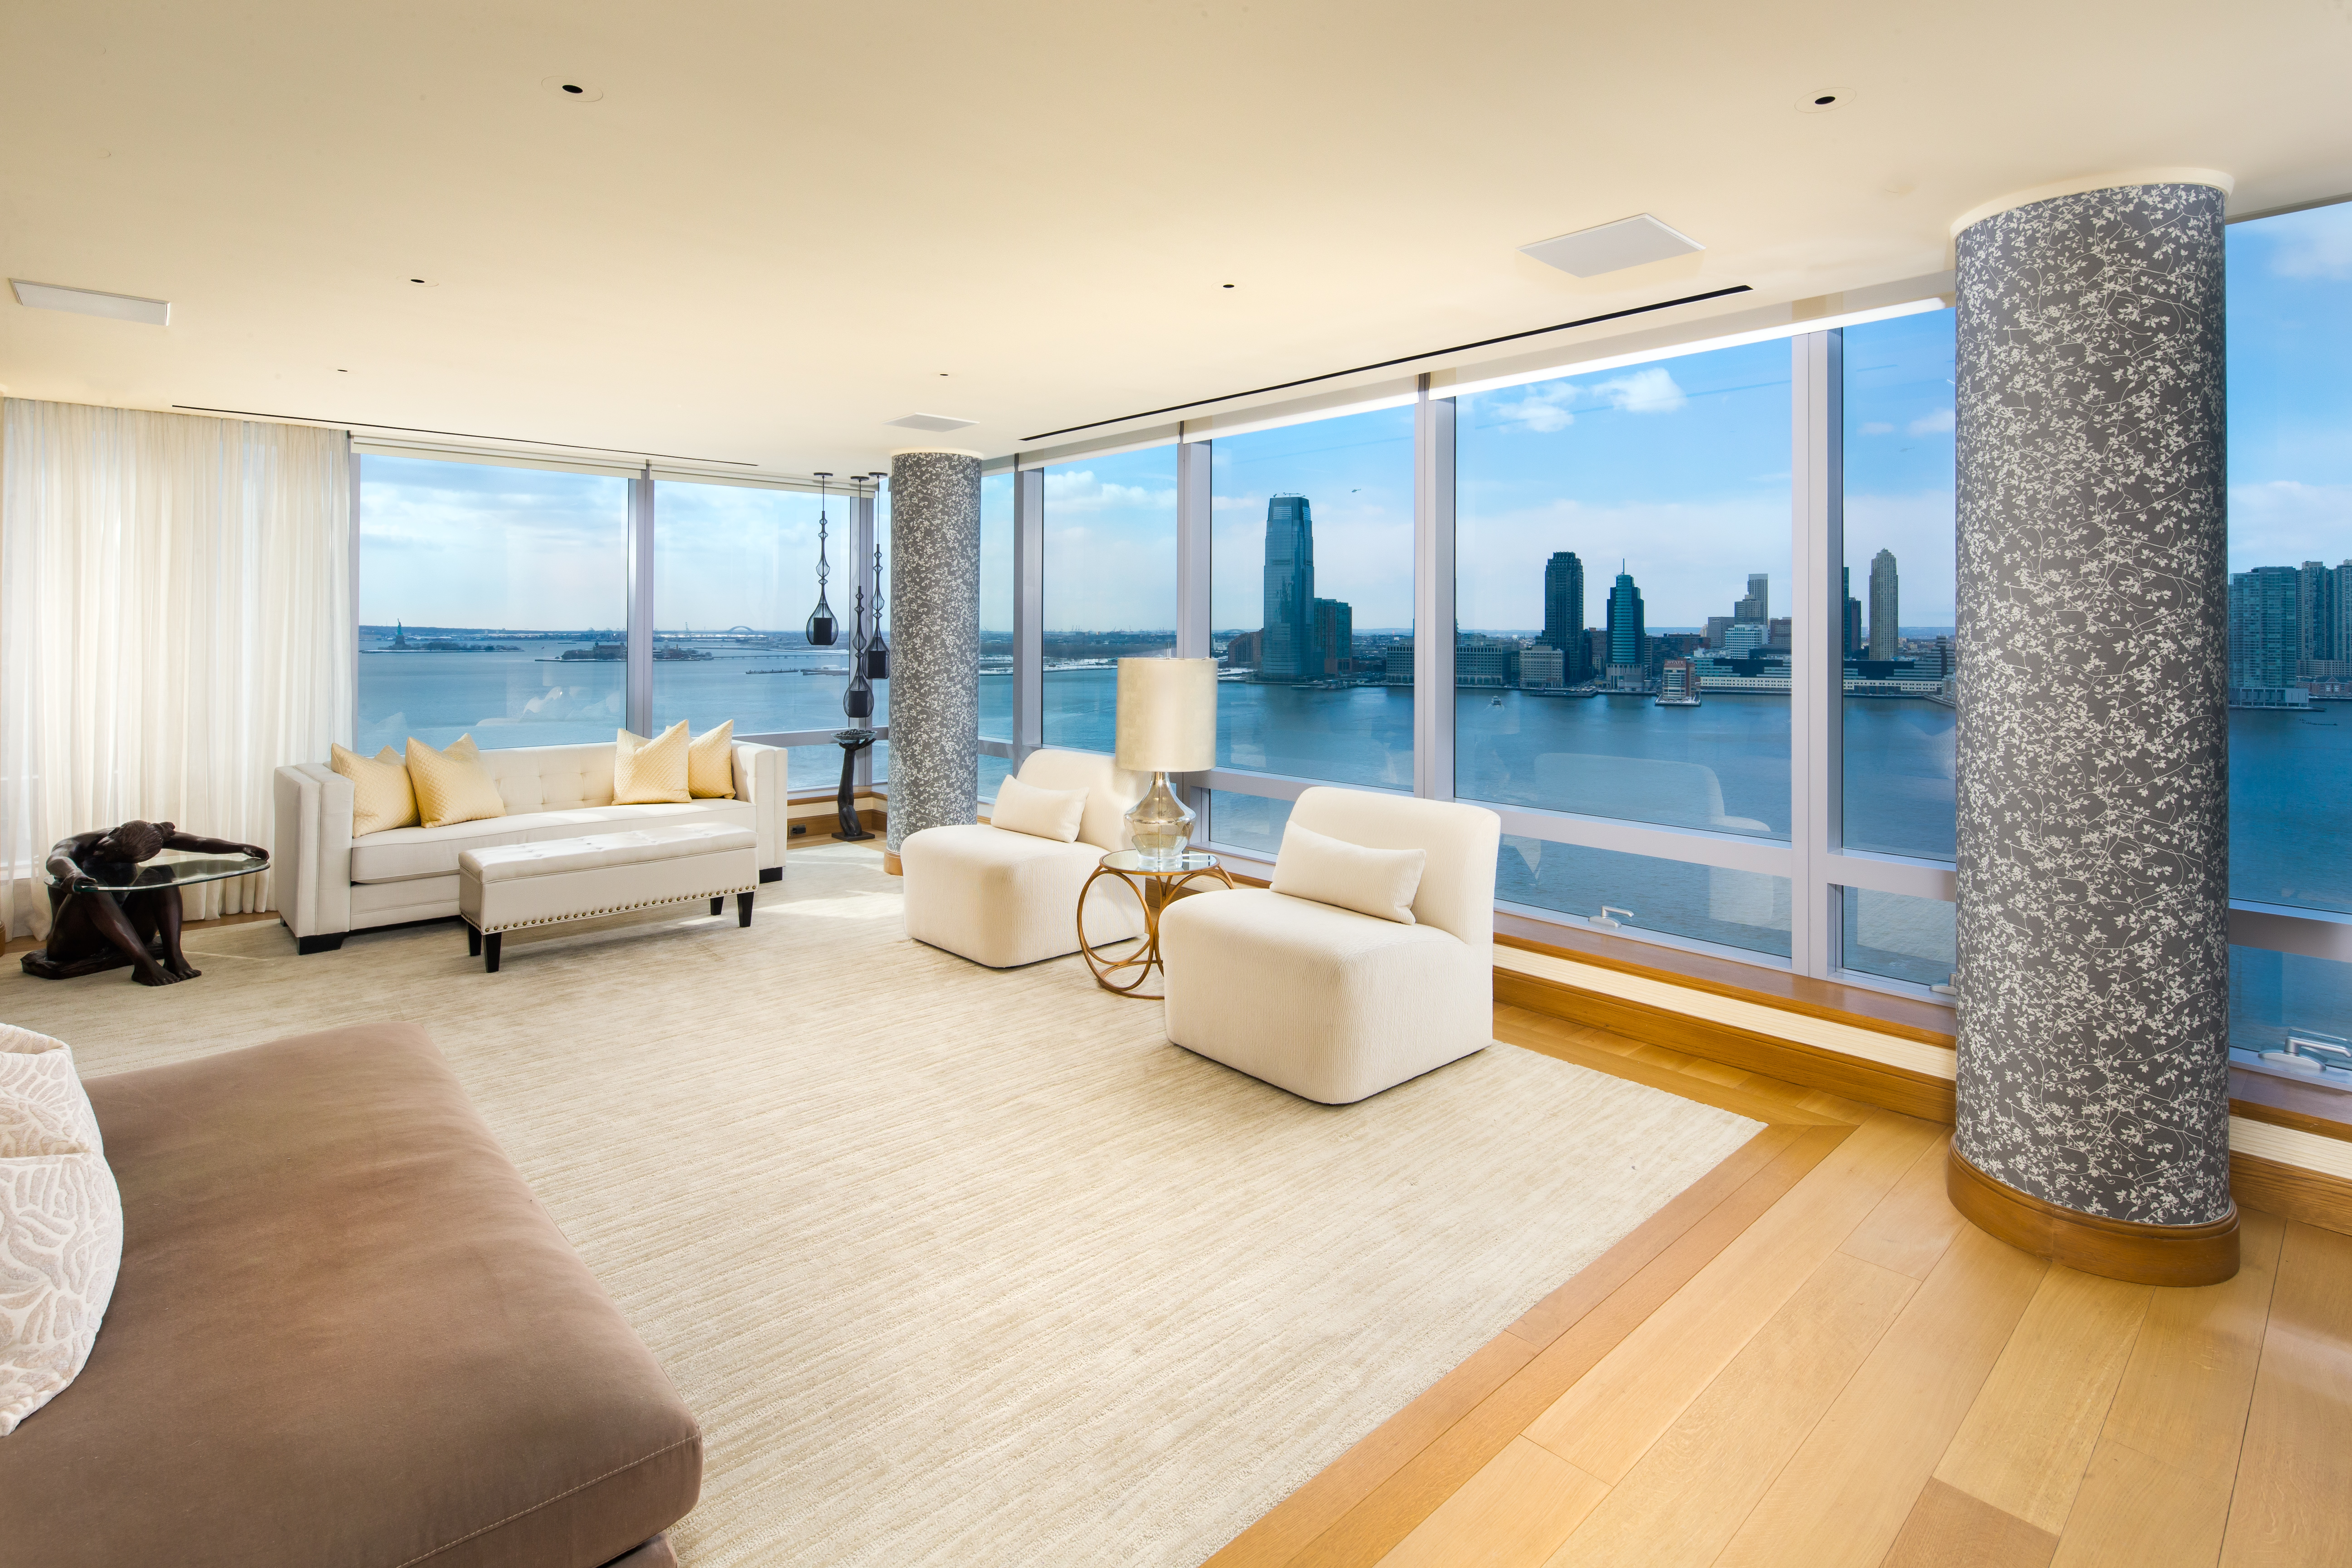 Tyra banks s battery park city apartment hits the market for 2 river terrace battery park